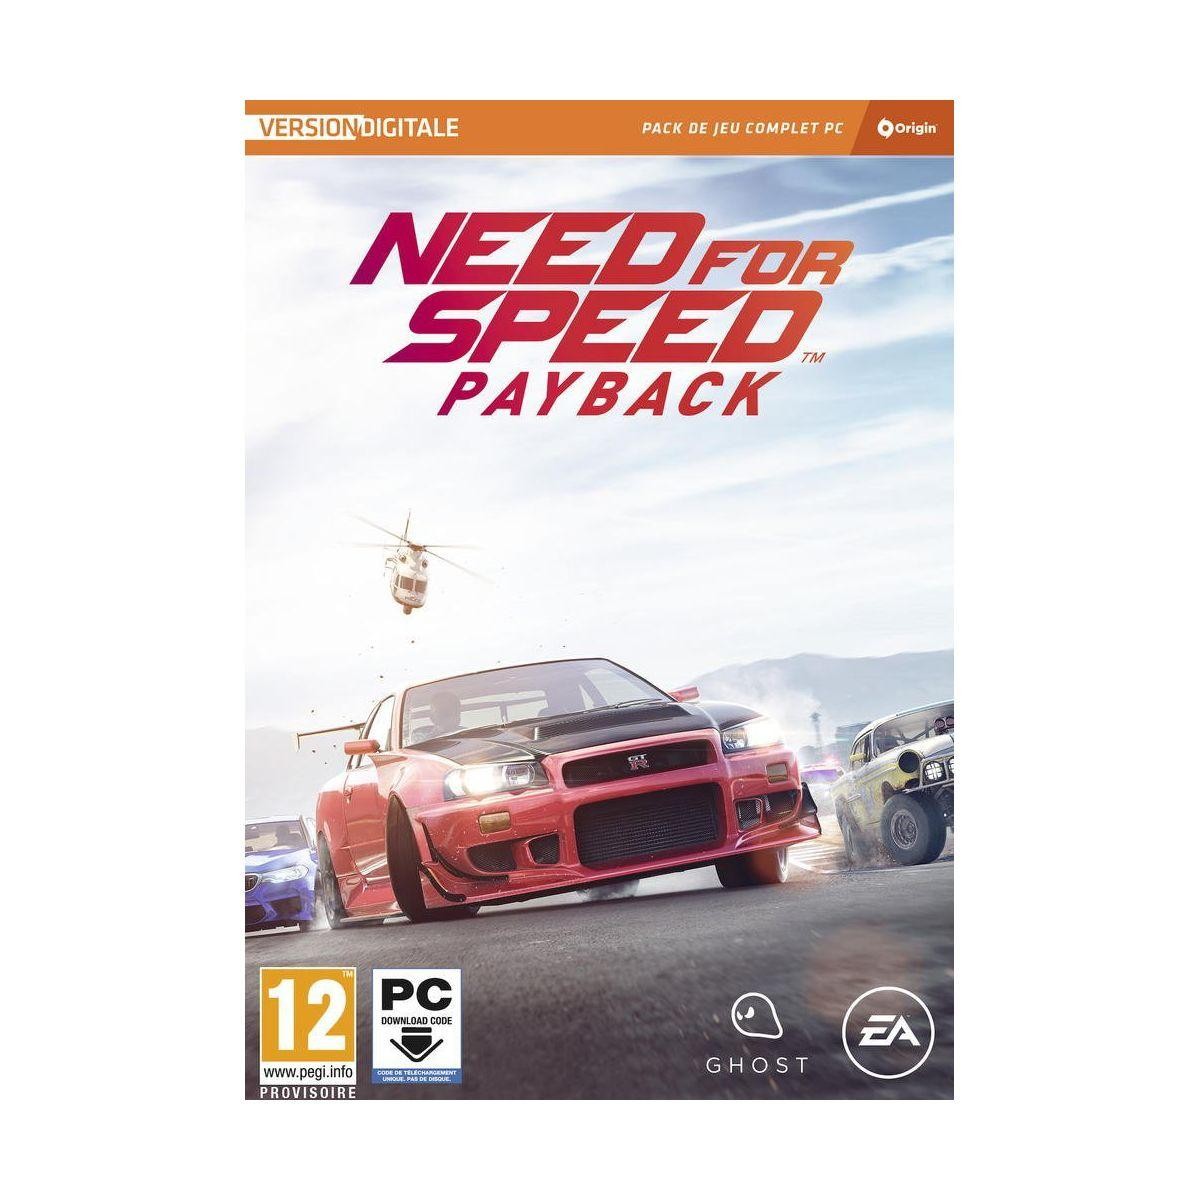 Jeu pc electronic arts need for speed payback (photo)